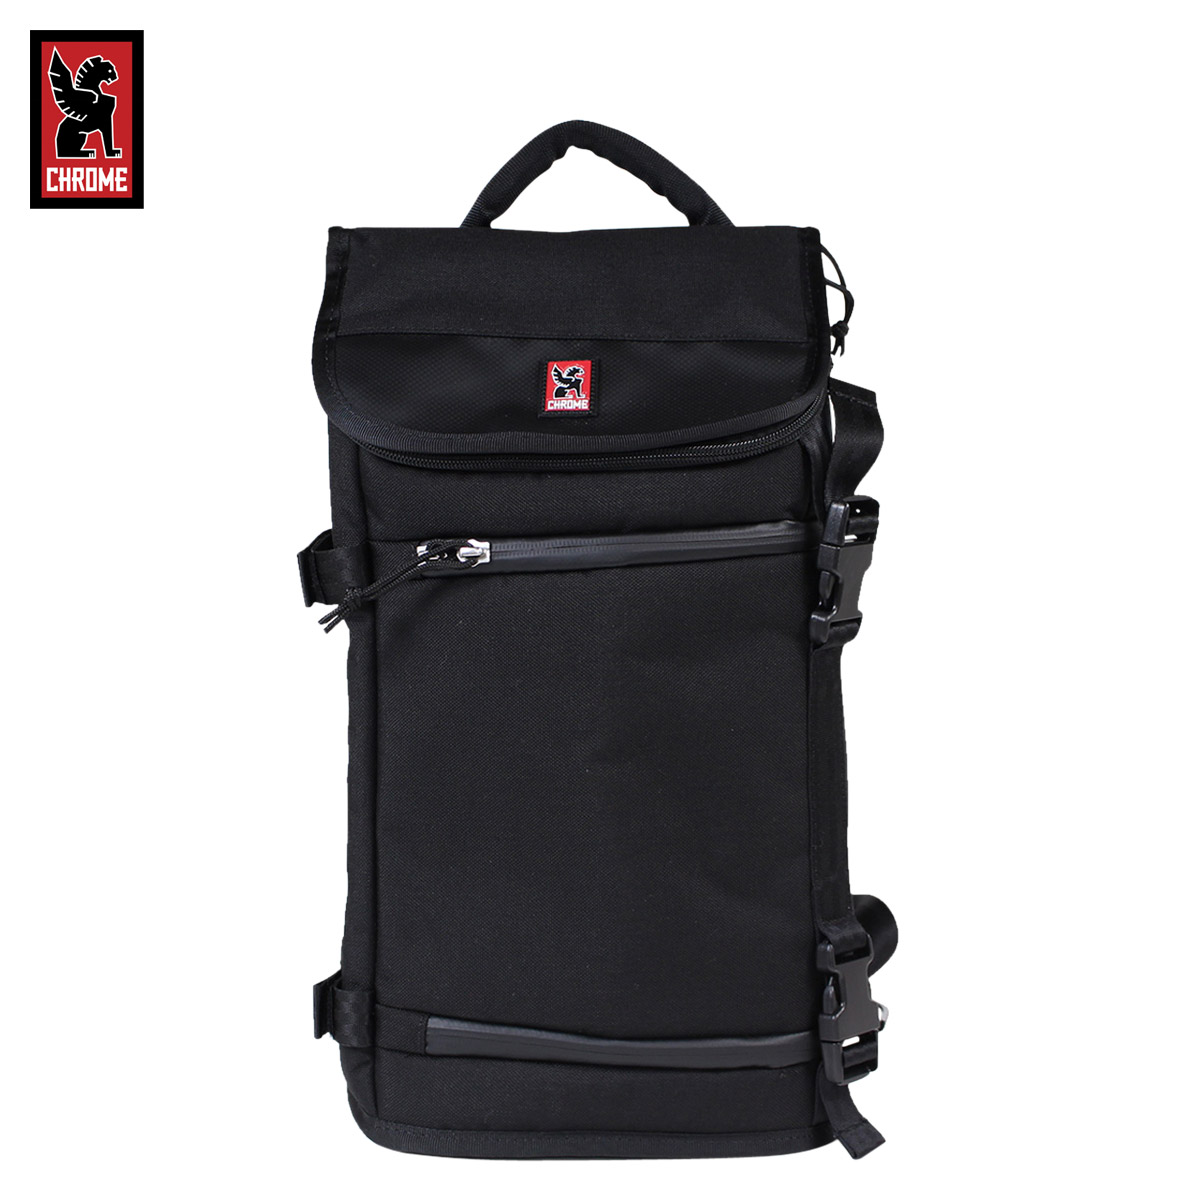 Model Design Especially Ergonomic Shoulder Straps With High Water Resistance Is Unique To This Brand Icon